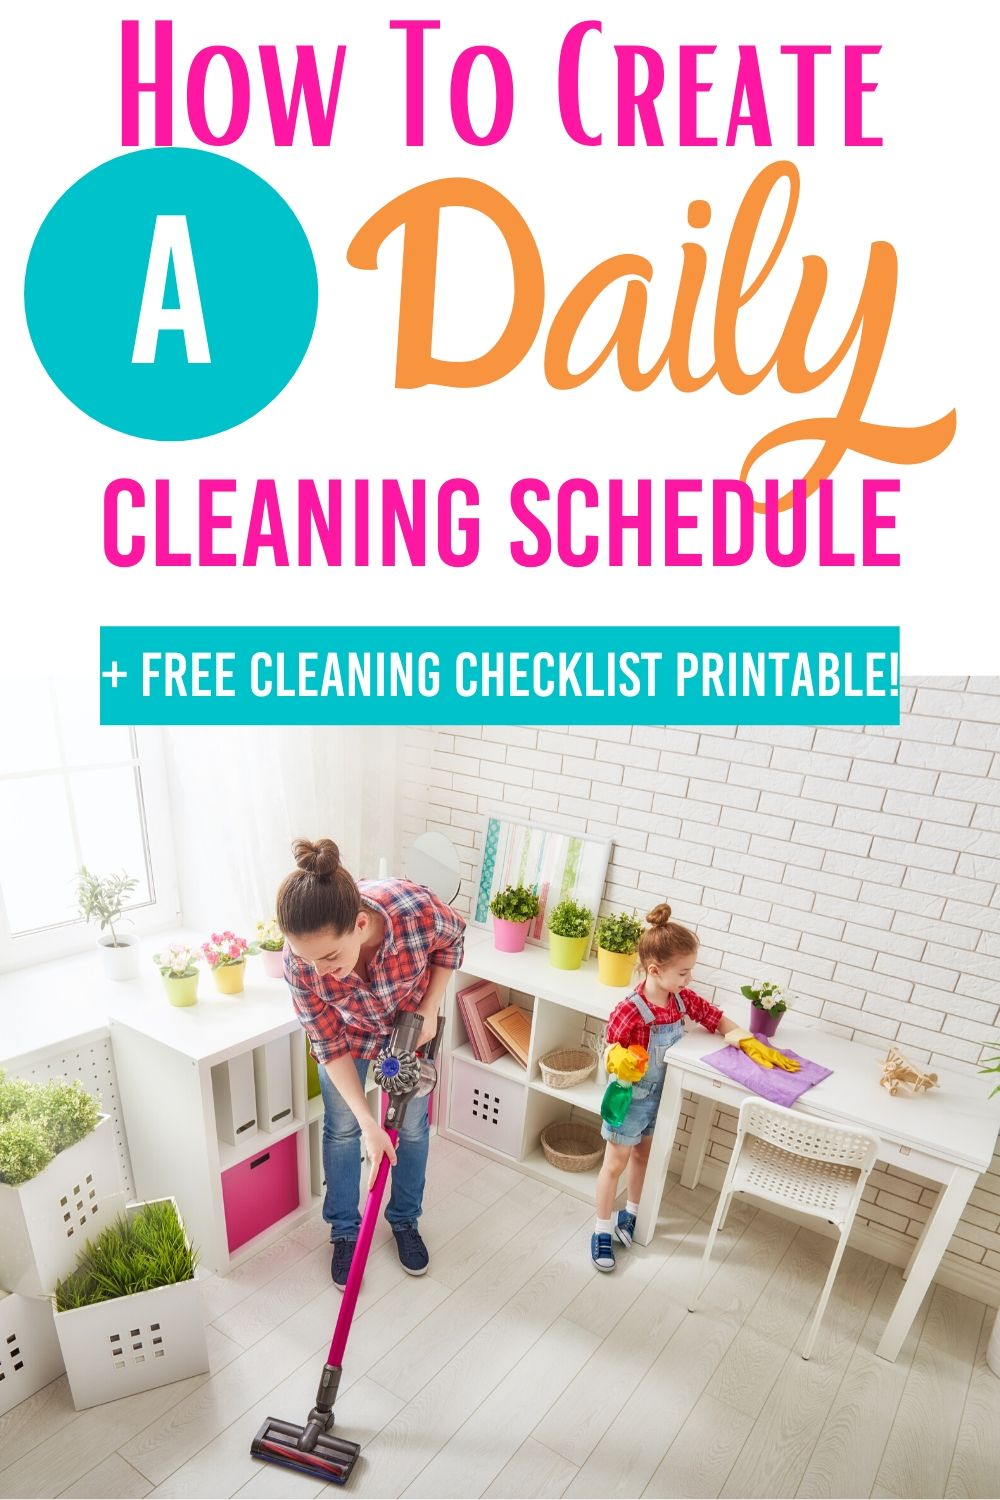 Set up a daily cleaning routine that you can follow and complete each day without forgetting something. #cleaning #cleaningtips #dailycleaning #freeprintable #cleaningchecklist #cleaningschedule #dailycleaningschedule via @homebyjenn